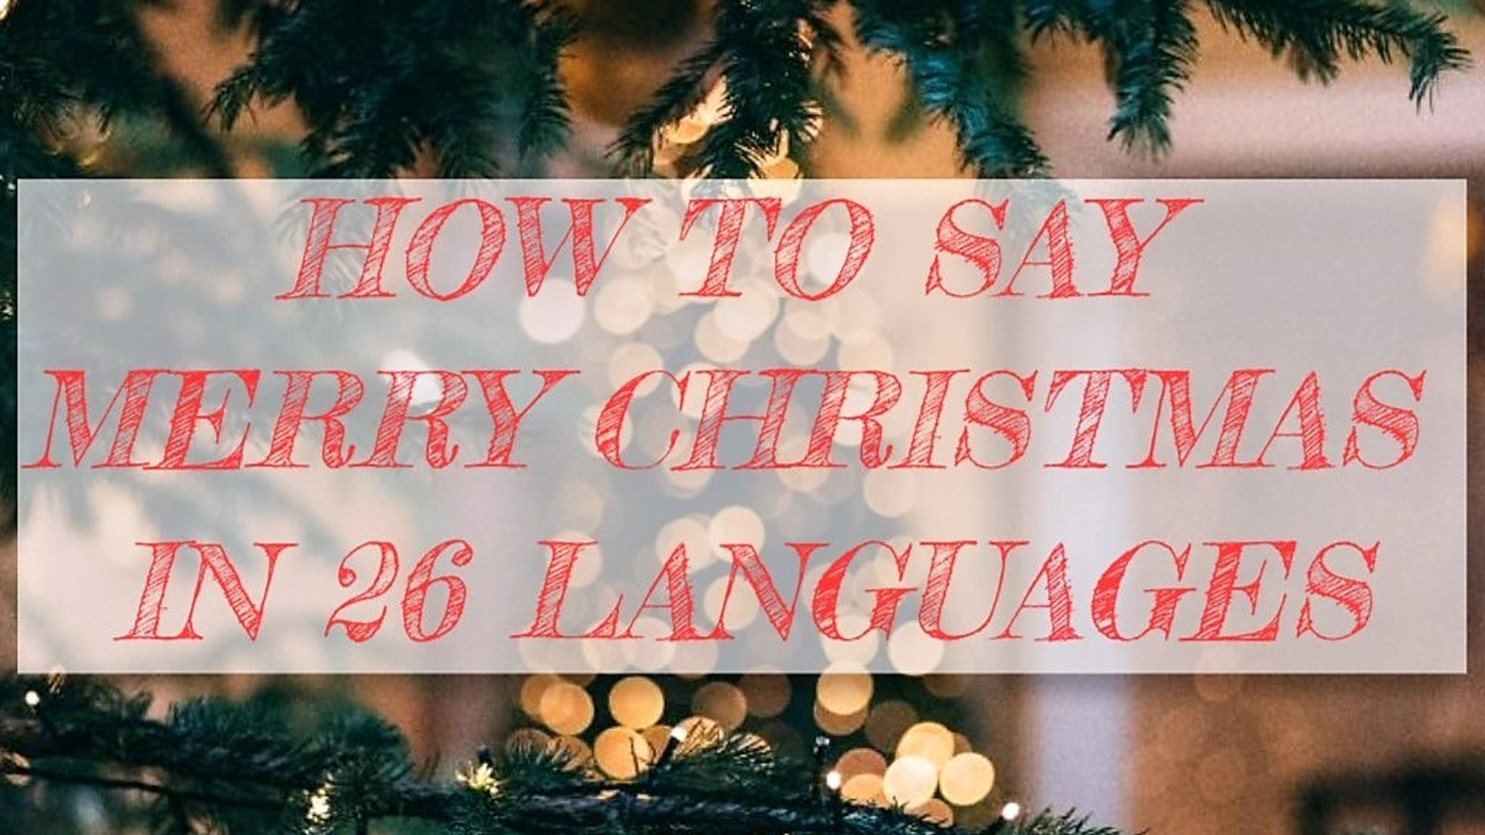 How To Spell Merry Christmas.Merry Christmas Welcome To Ampersand S Travel Blog